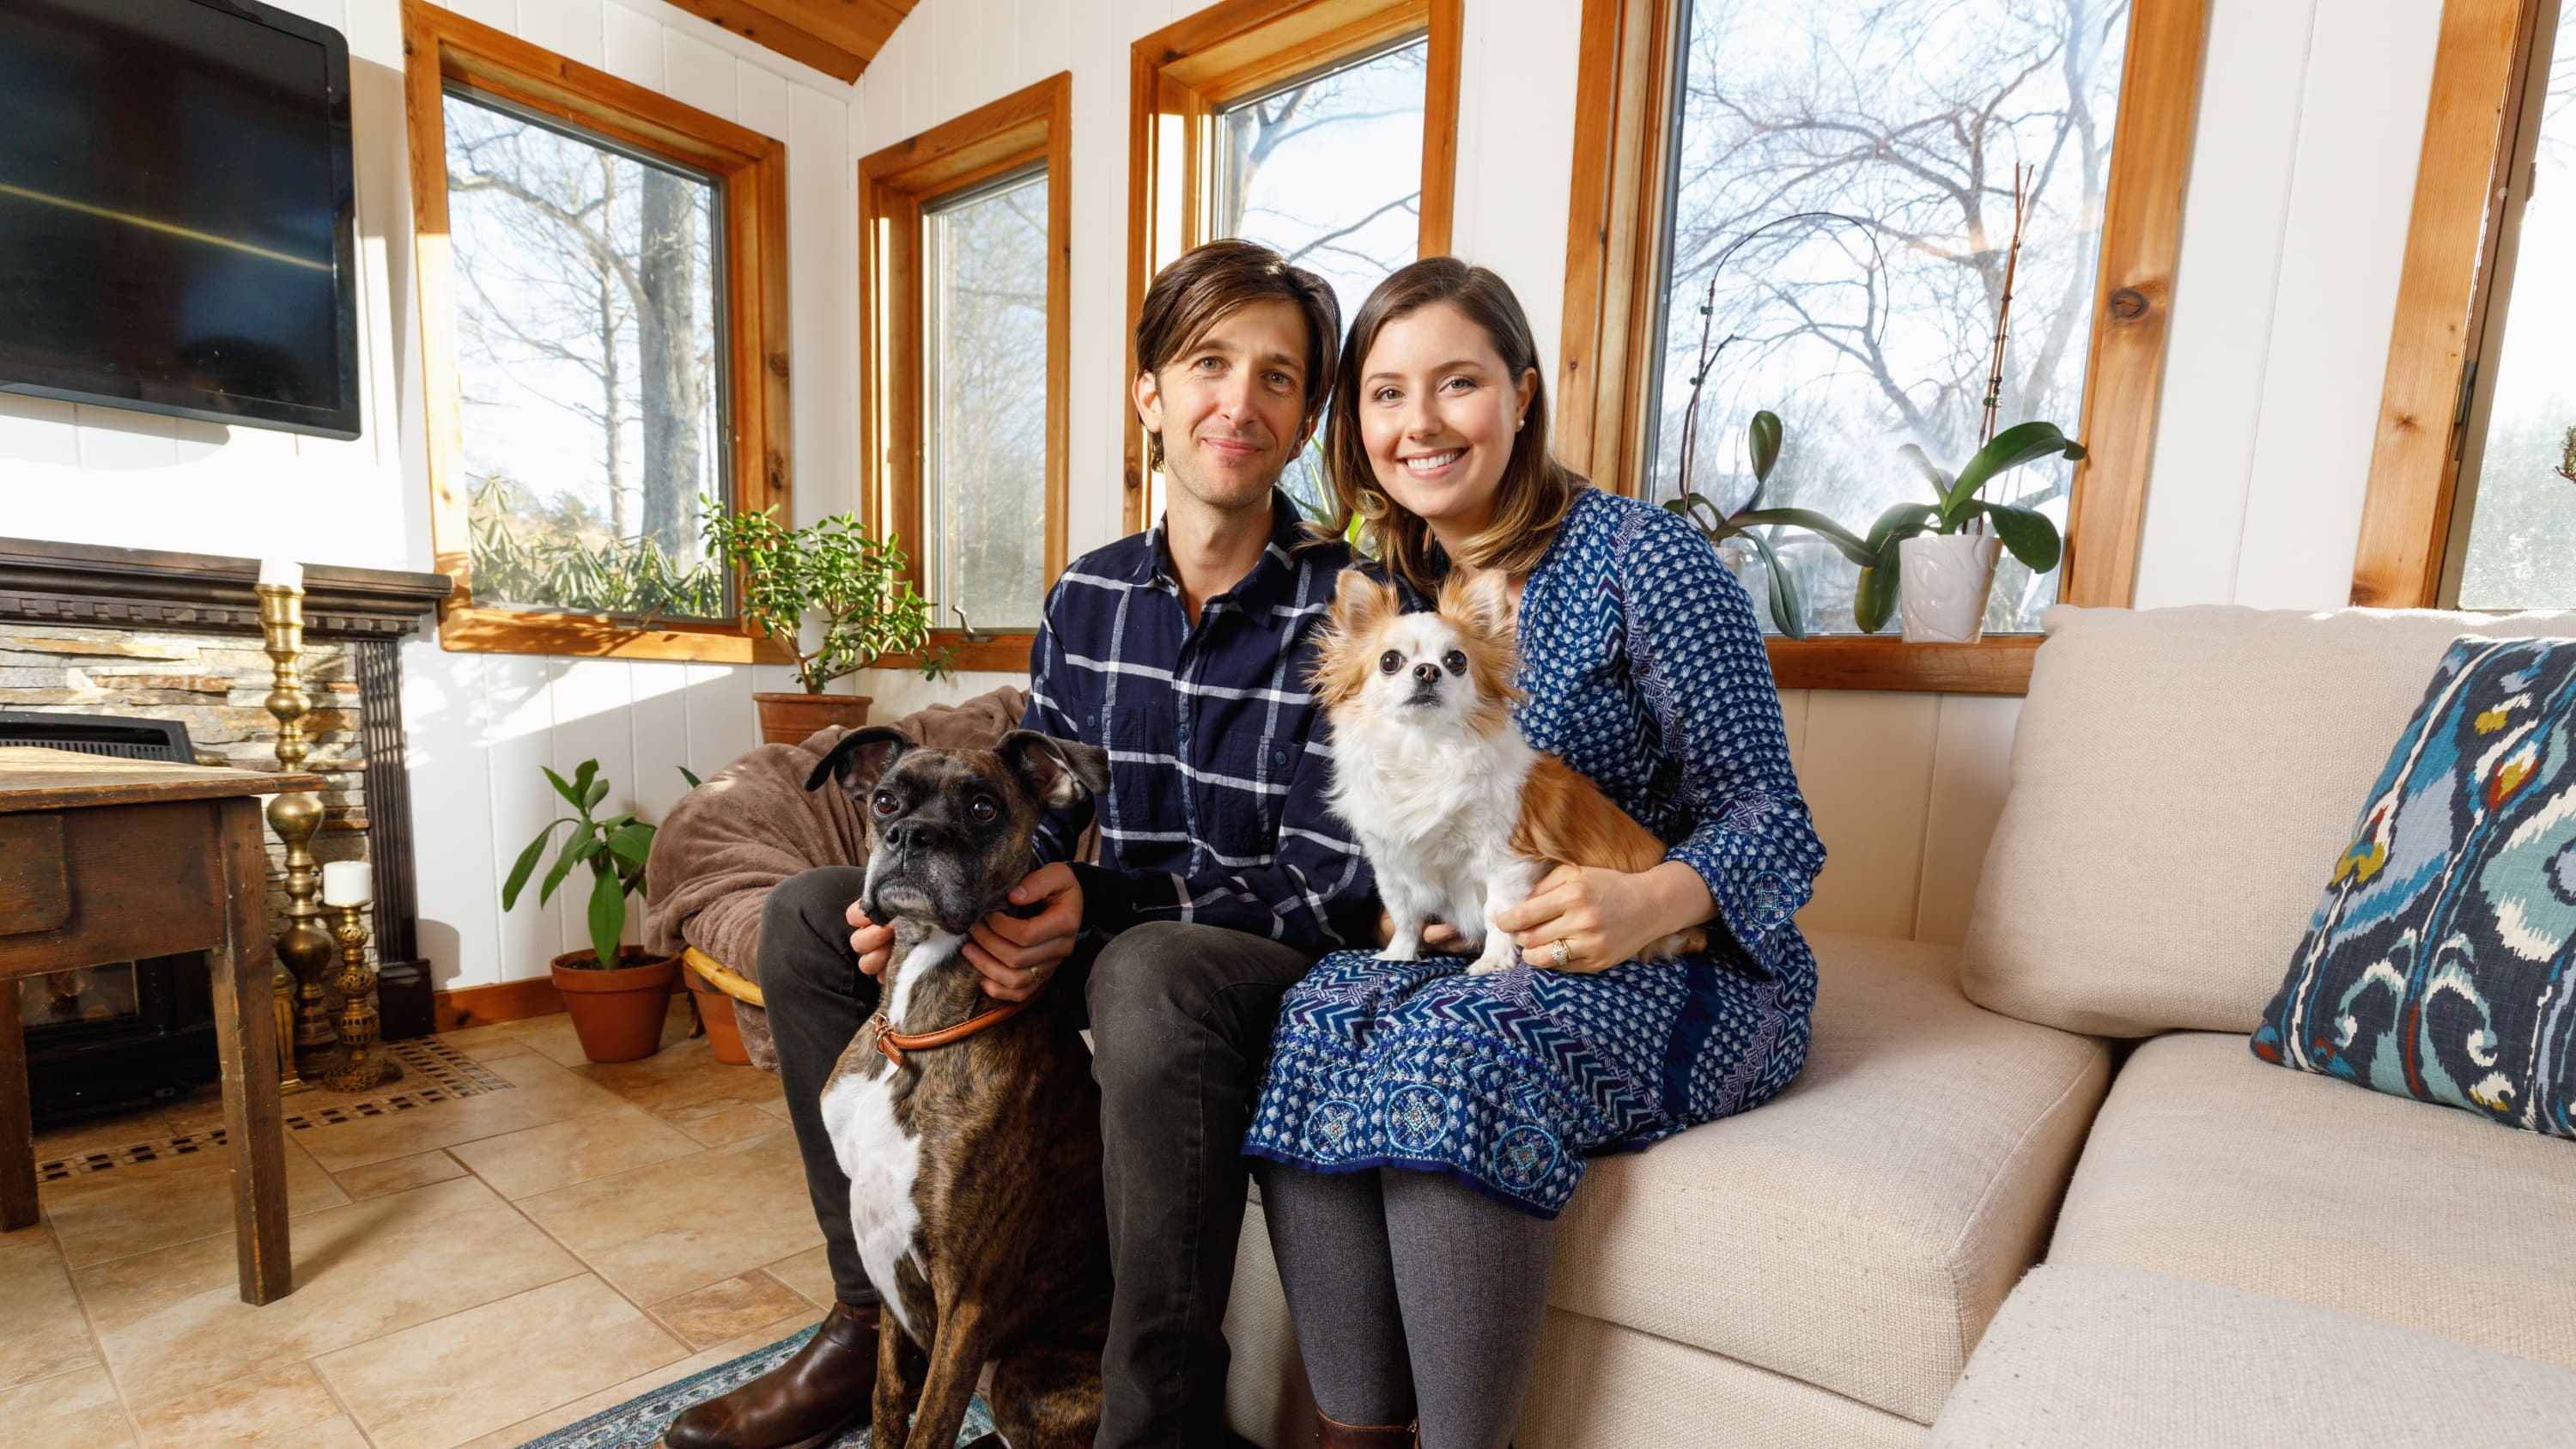 Marcus and Laura Gordon with their two dogs on the couch